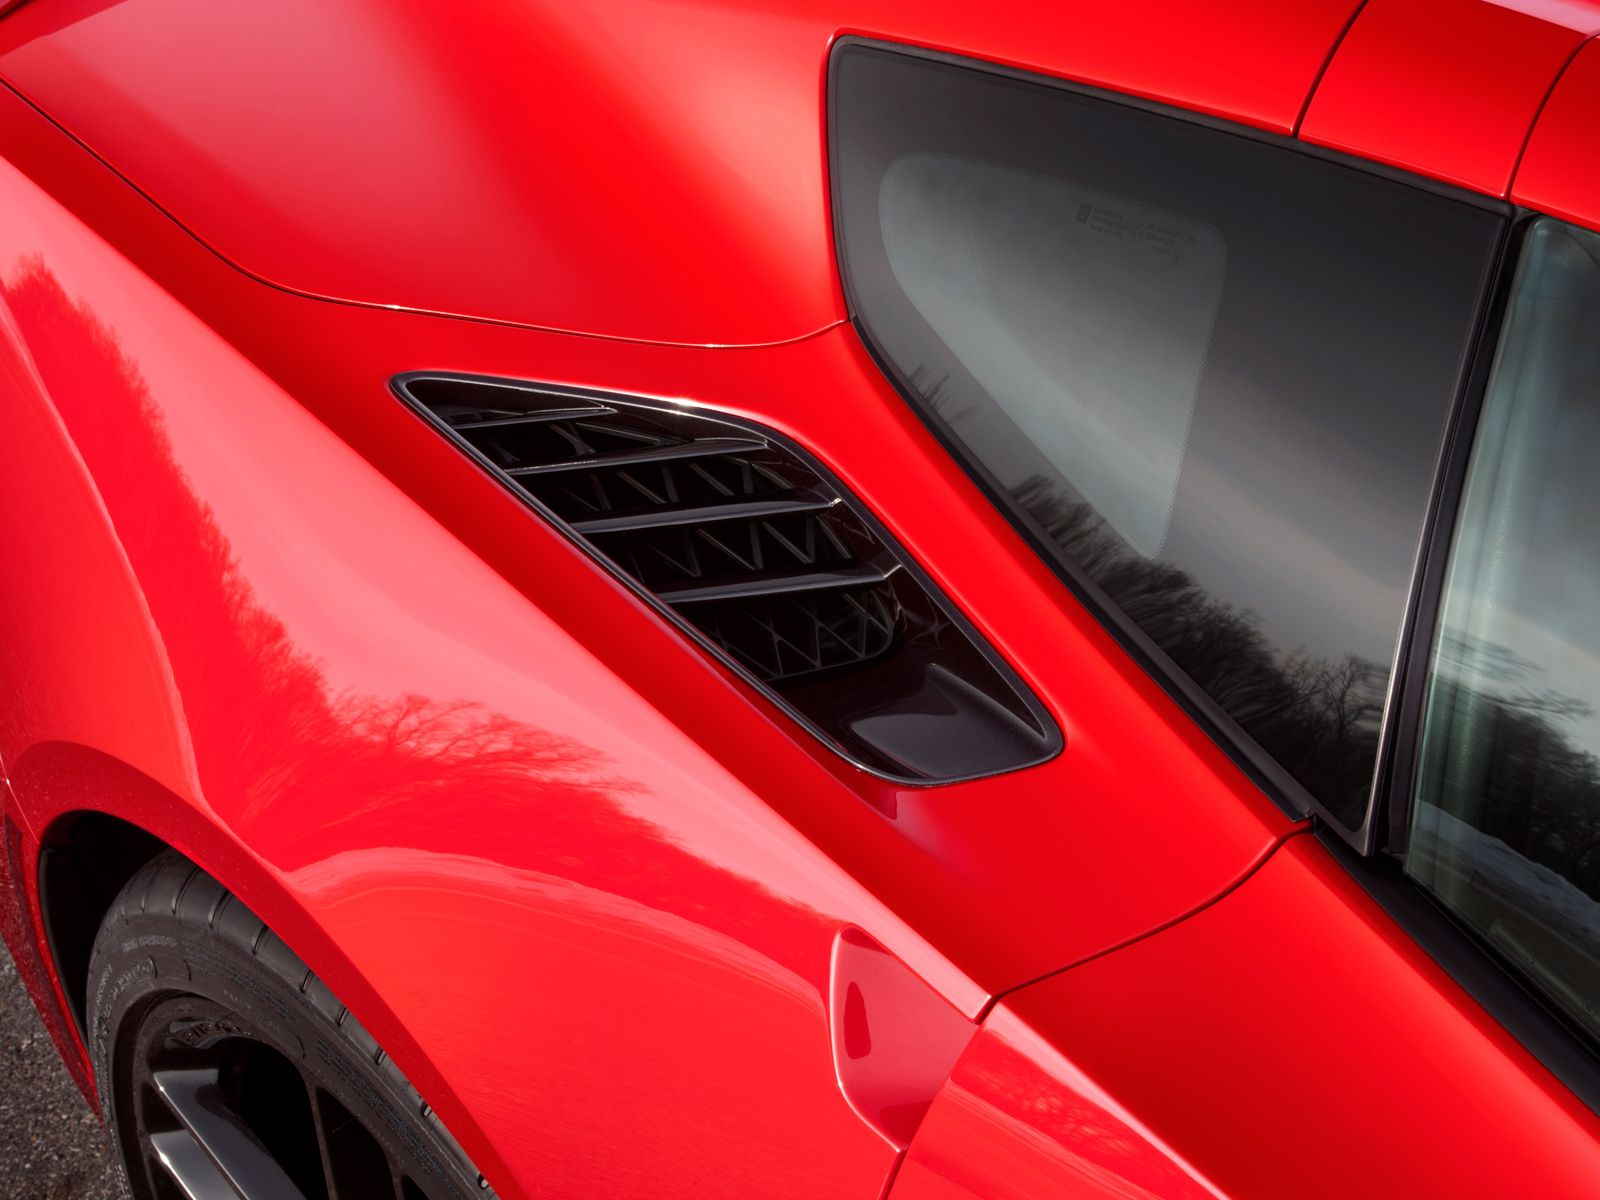 Rear Fender Vent | 2014 Corvette Stingray | 2014 corvette